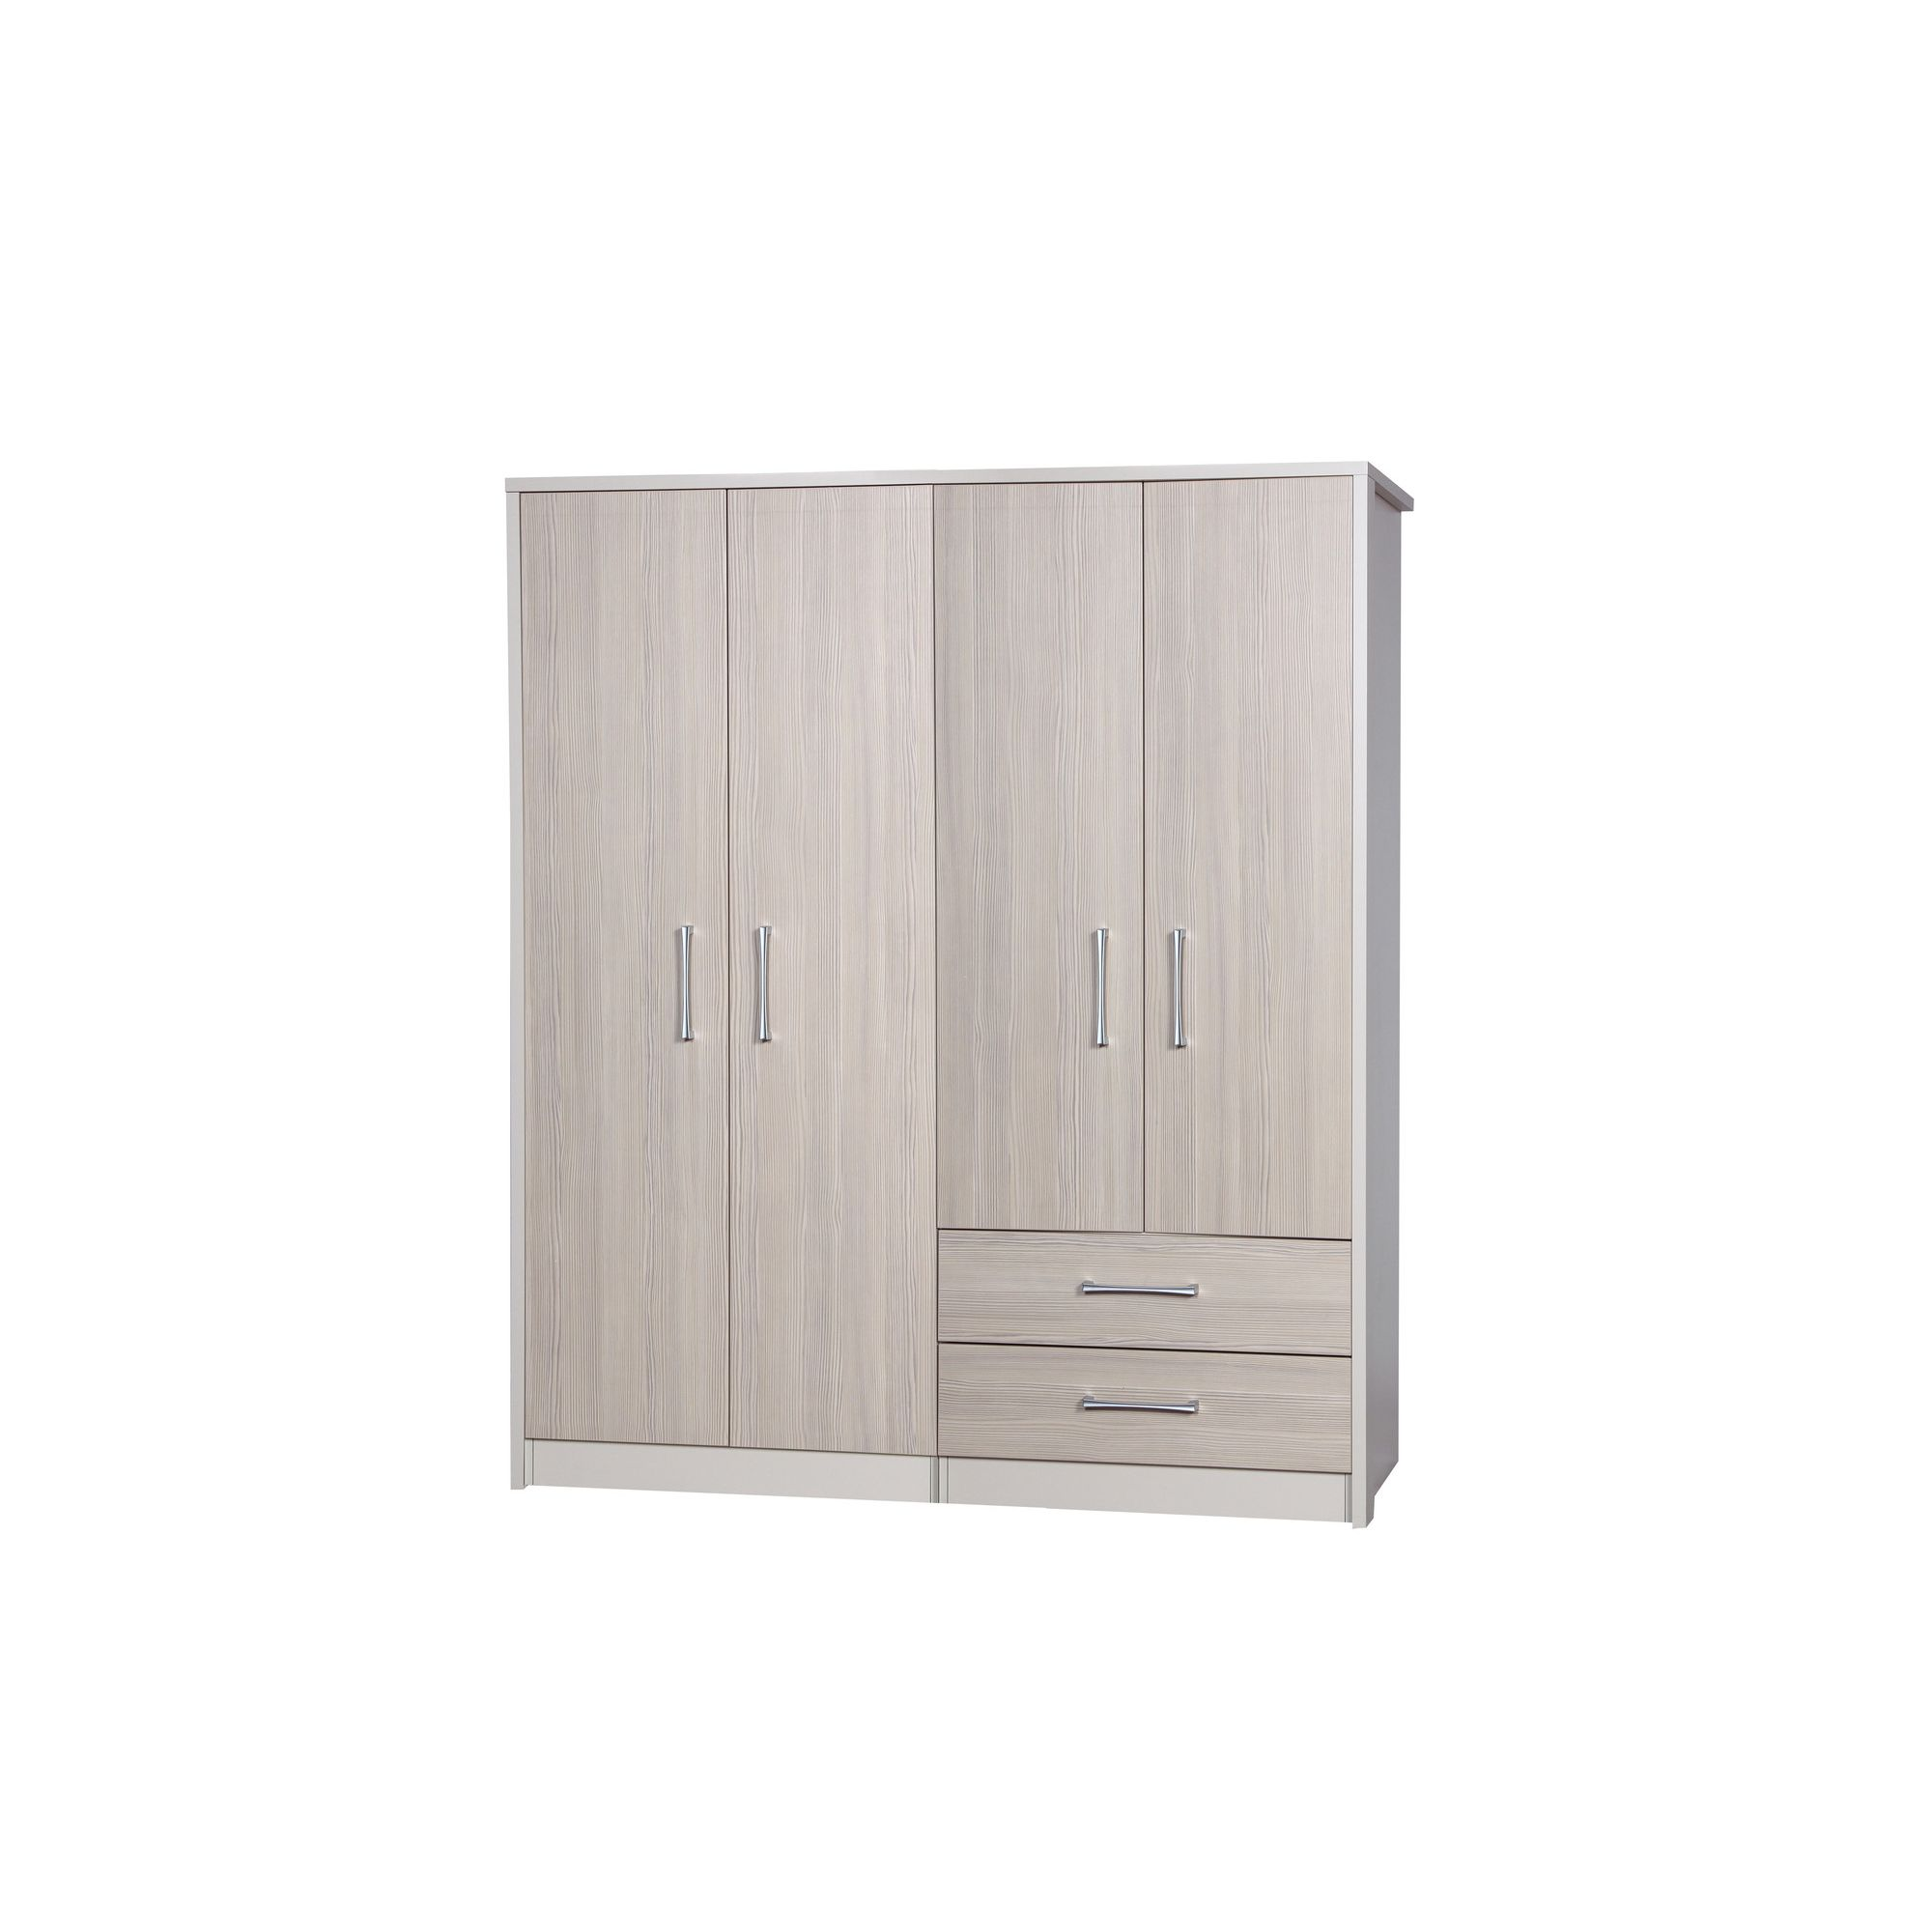 Alto Furniture Avola 4 Door Combi and Regular Wardrobe - Cream Carcass With Champagne Avola at Tesco Direct